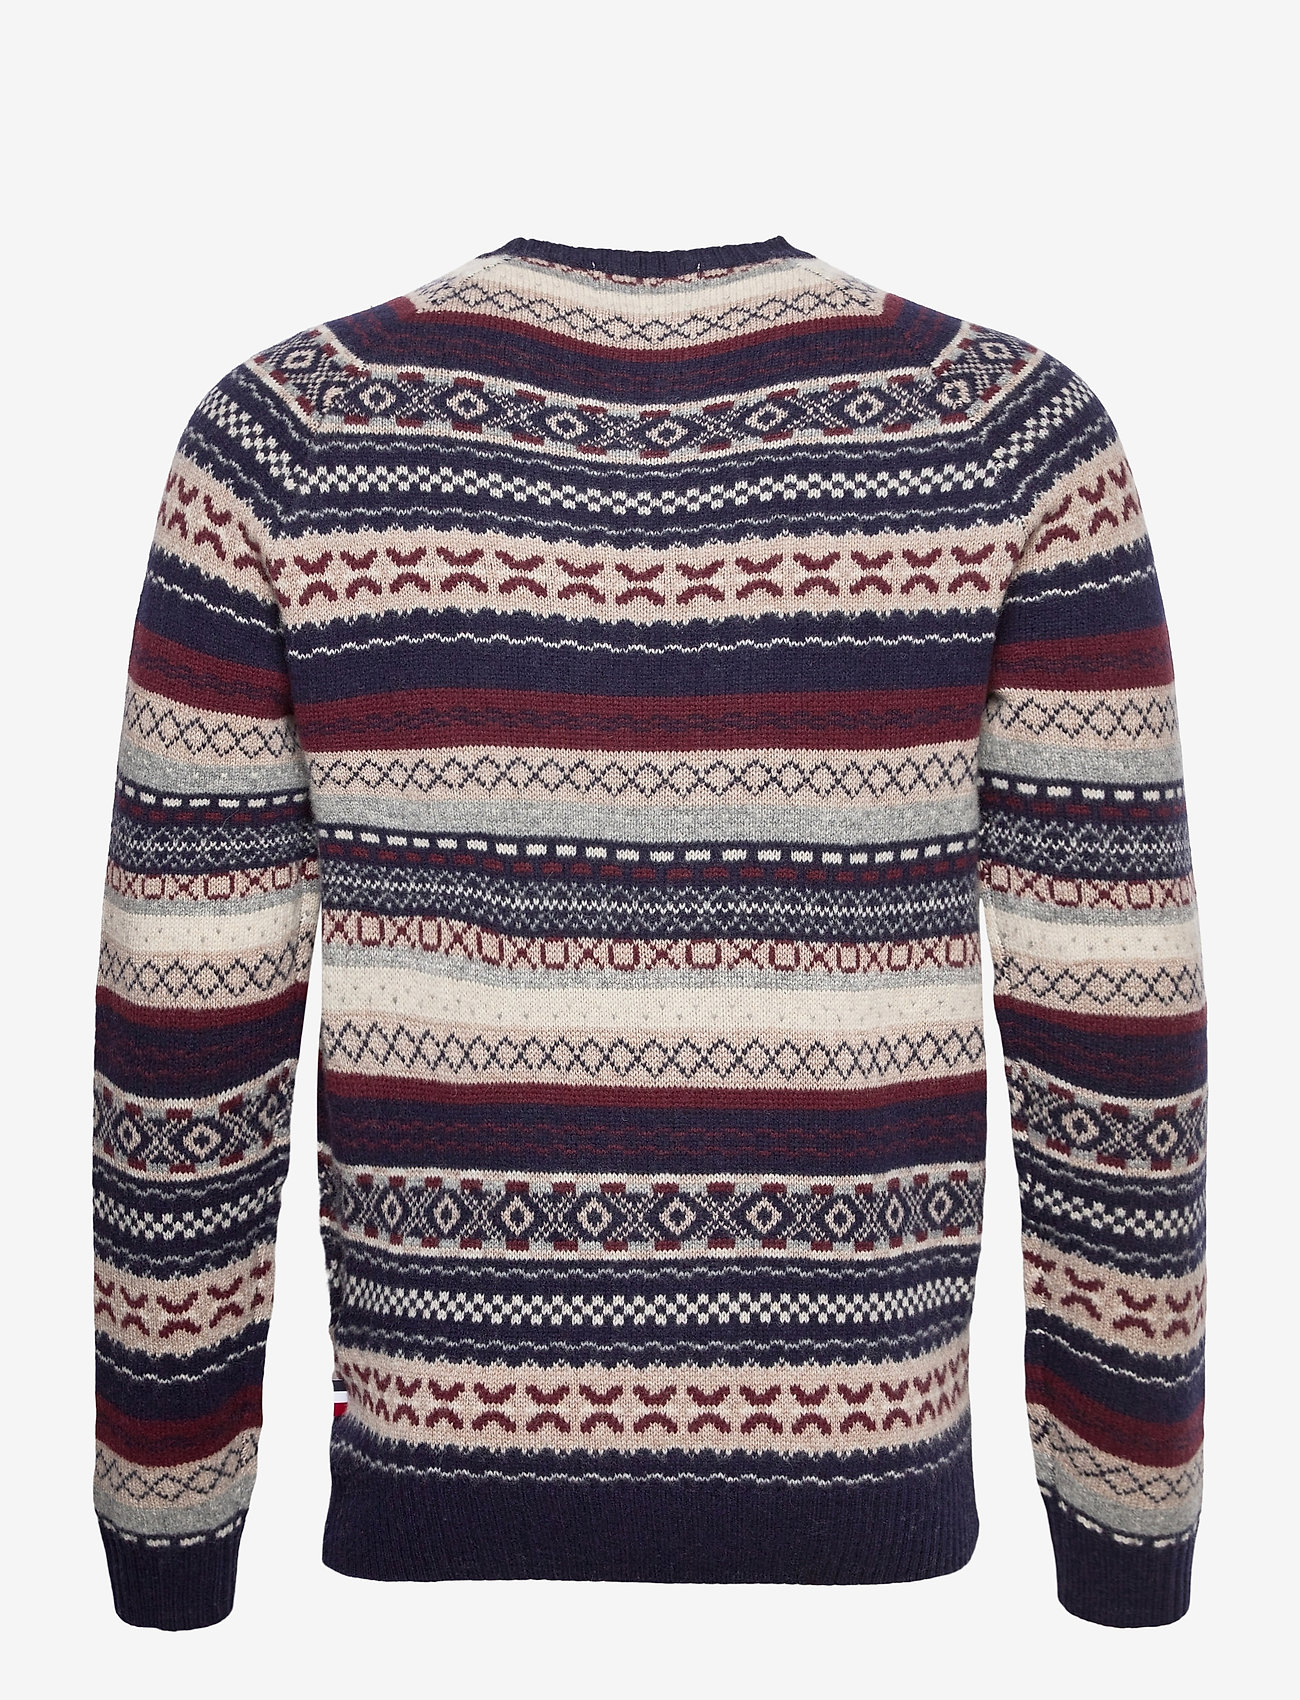 Eugene Wool Knit (Dark Navy With Multicolor Artwork) (159 €) - Les Deux mwJFn